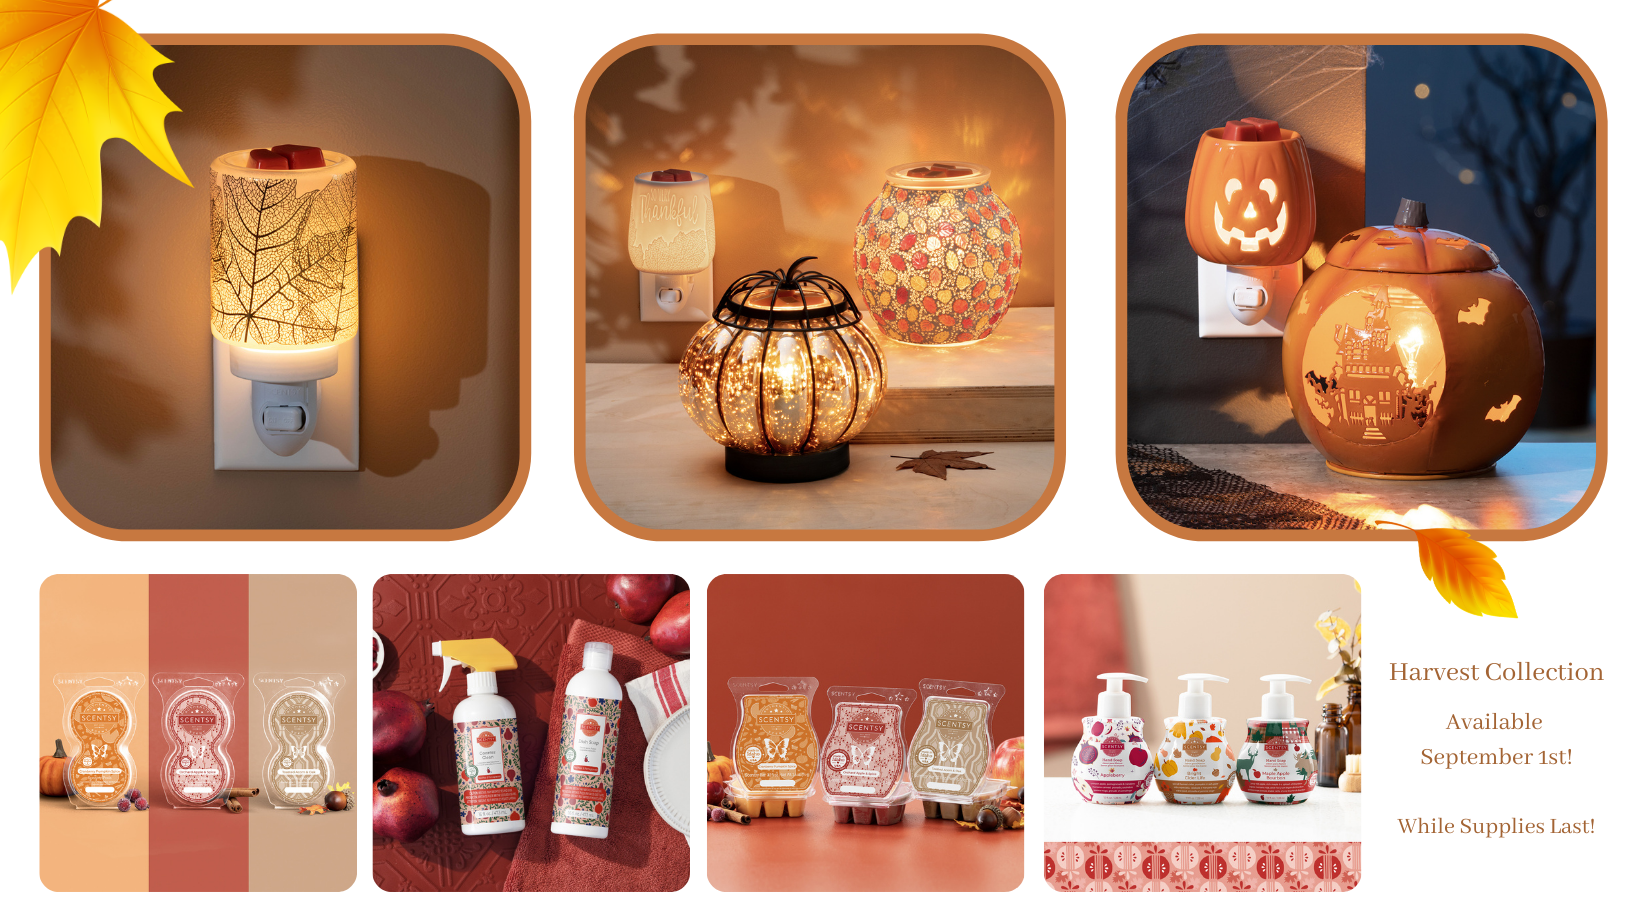 Scentsy Harvest Halloween Collection 2021